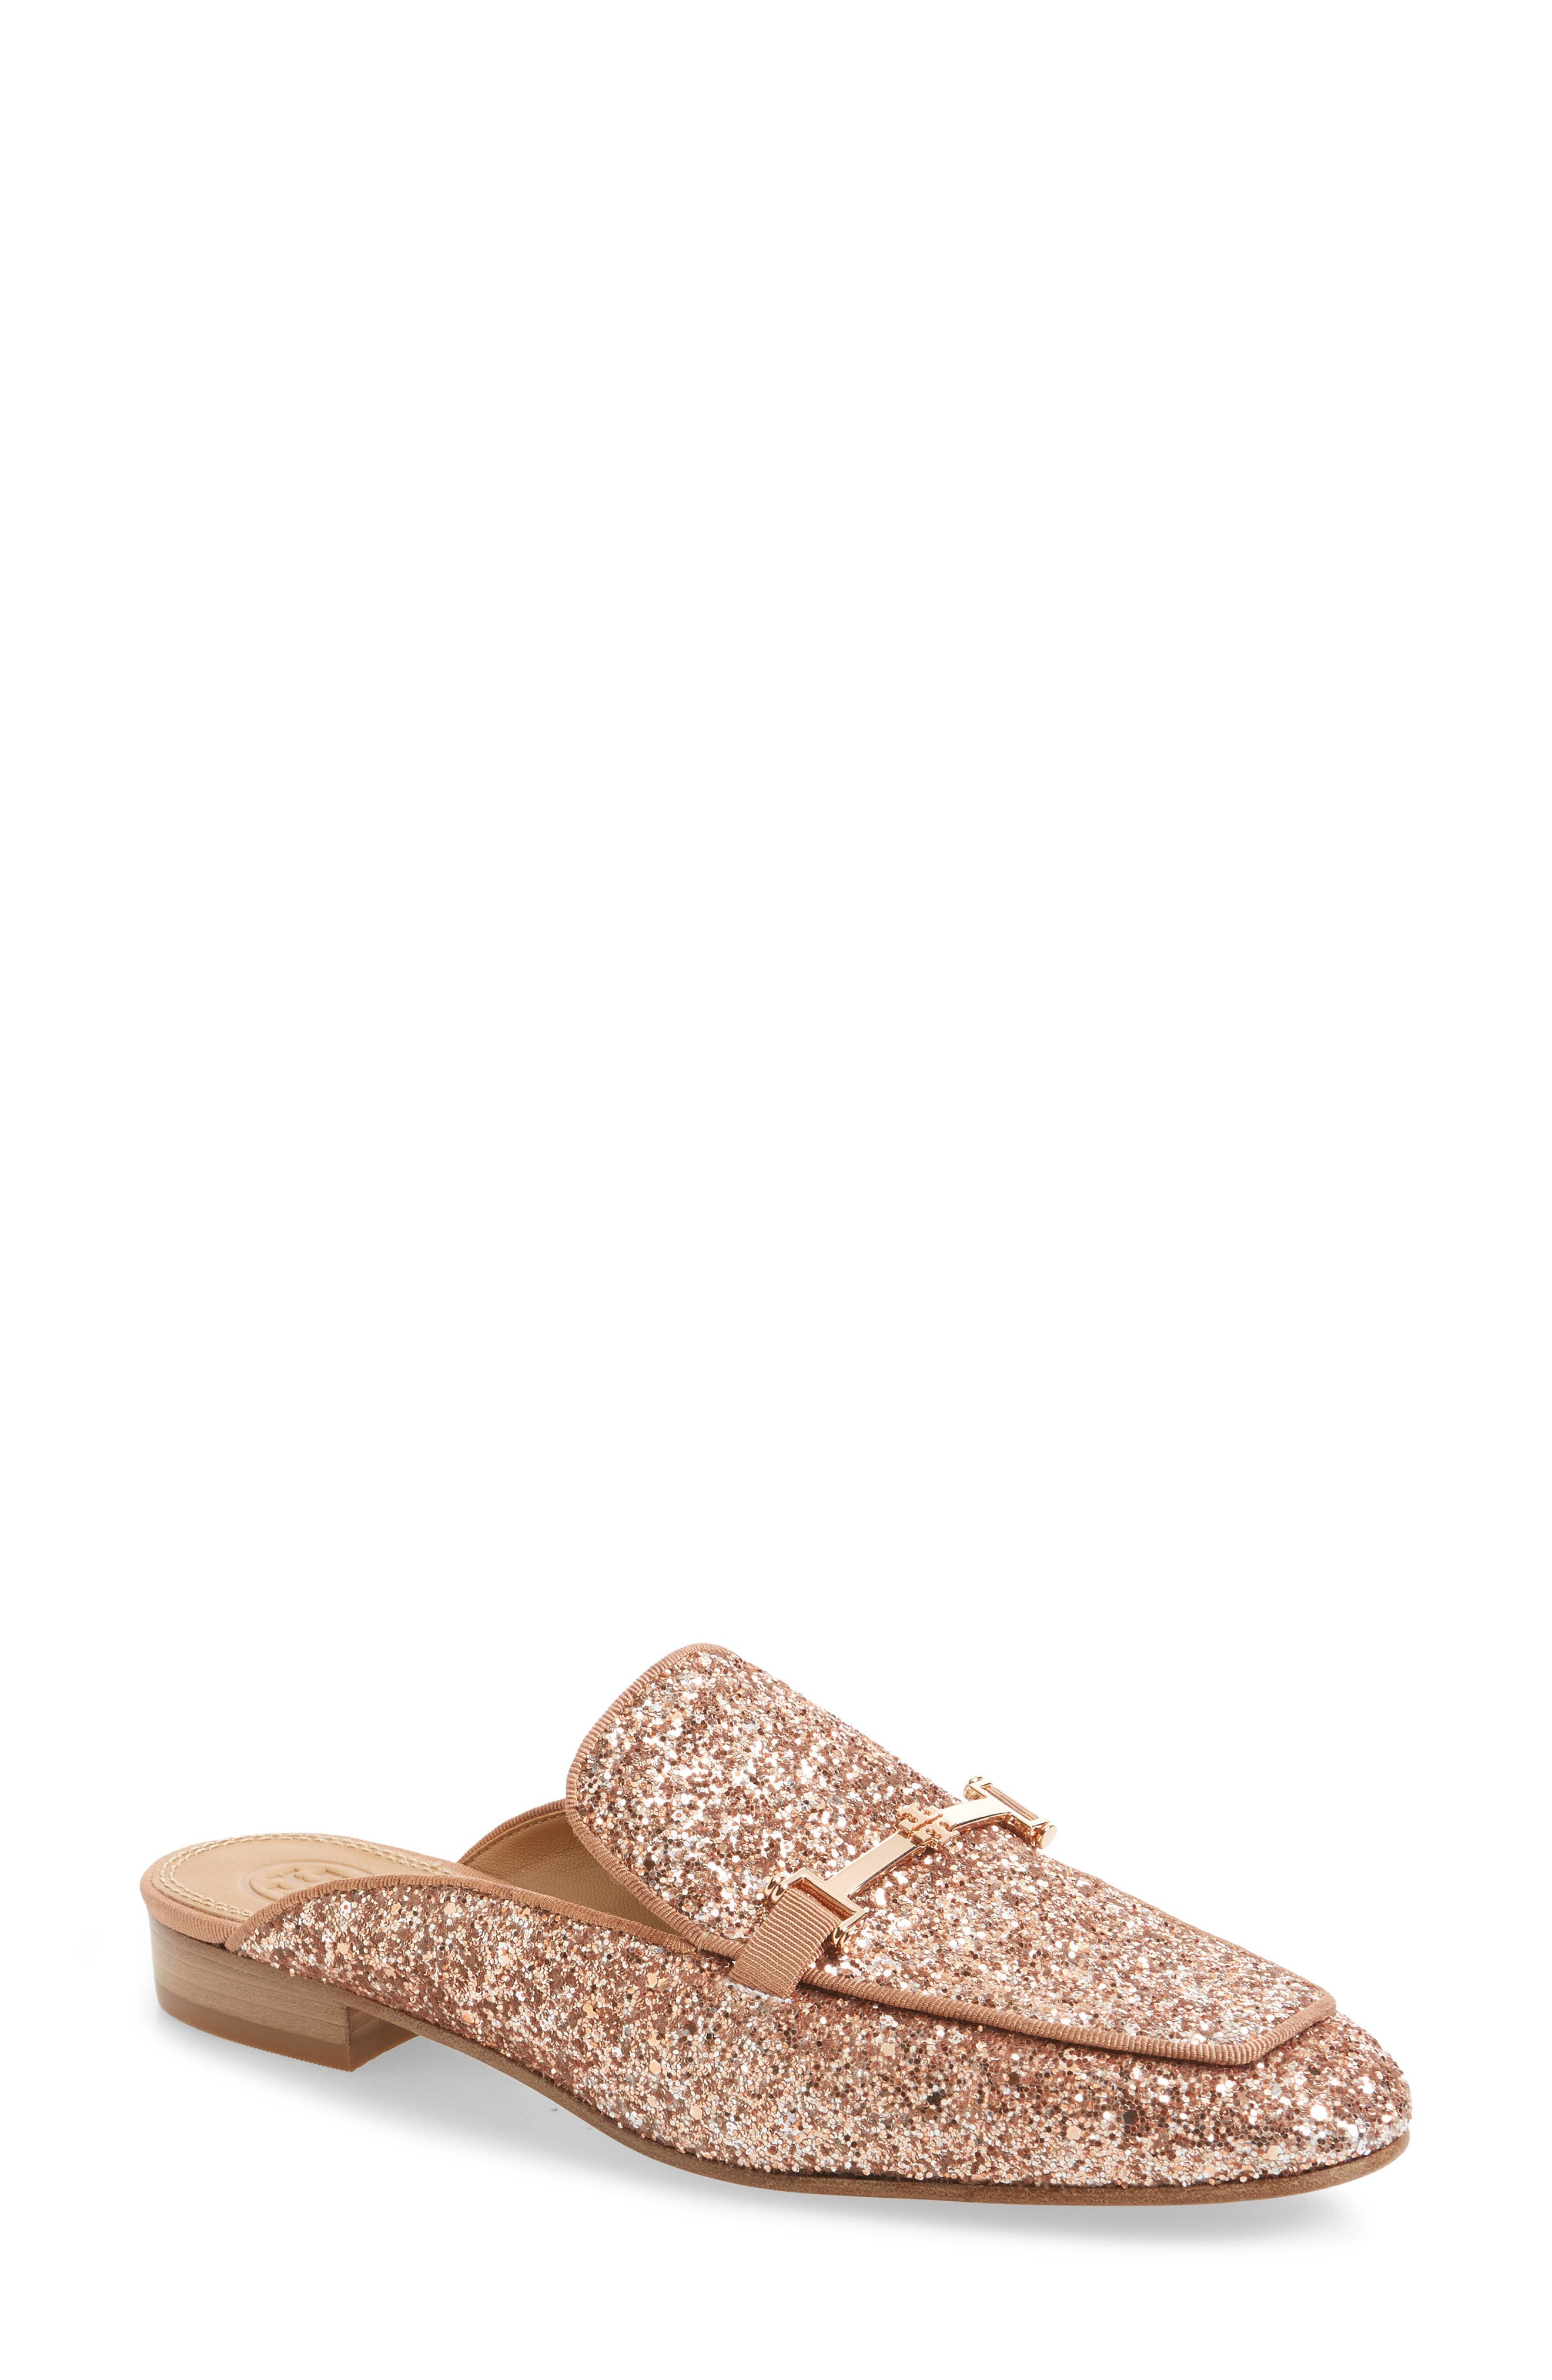 Amelia Loafer Mule,                         Main,                         color, Rose Gold/ Rose Gold